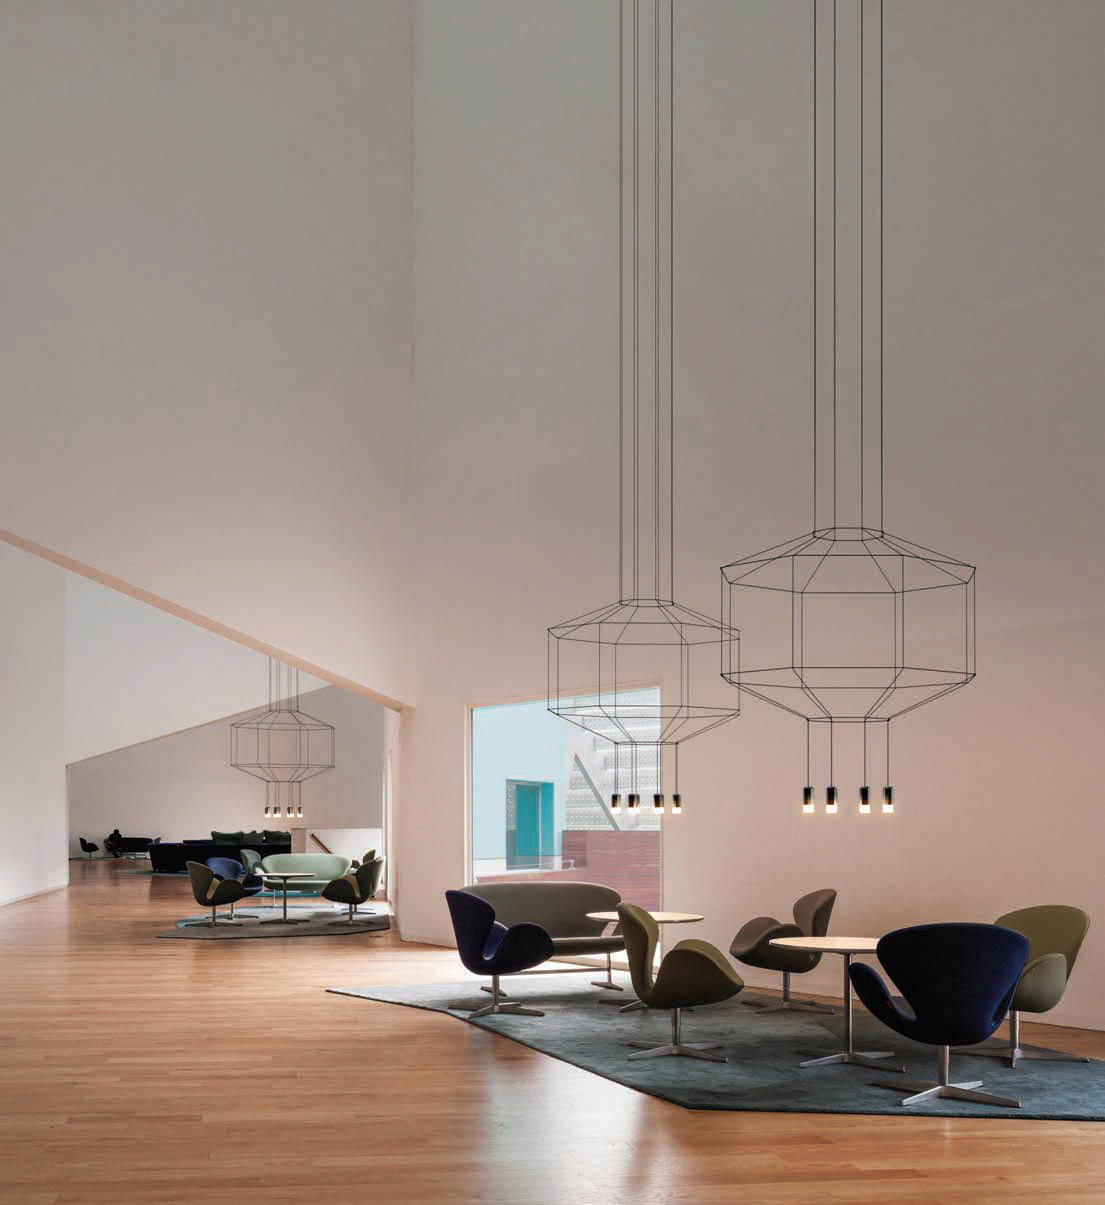 The delicate Wireflow suspended lamp designed by Arik Levy for Vibia is a modern take on the traditional chandelier.